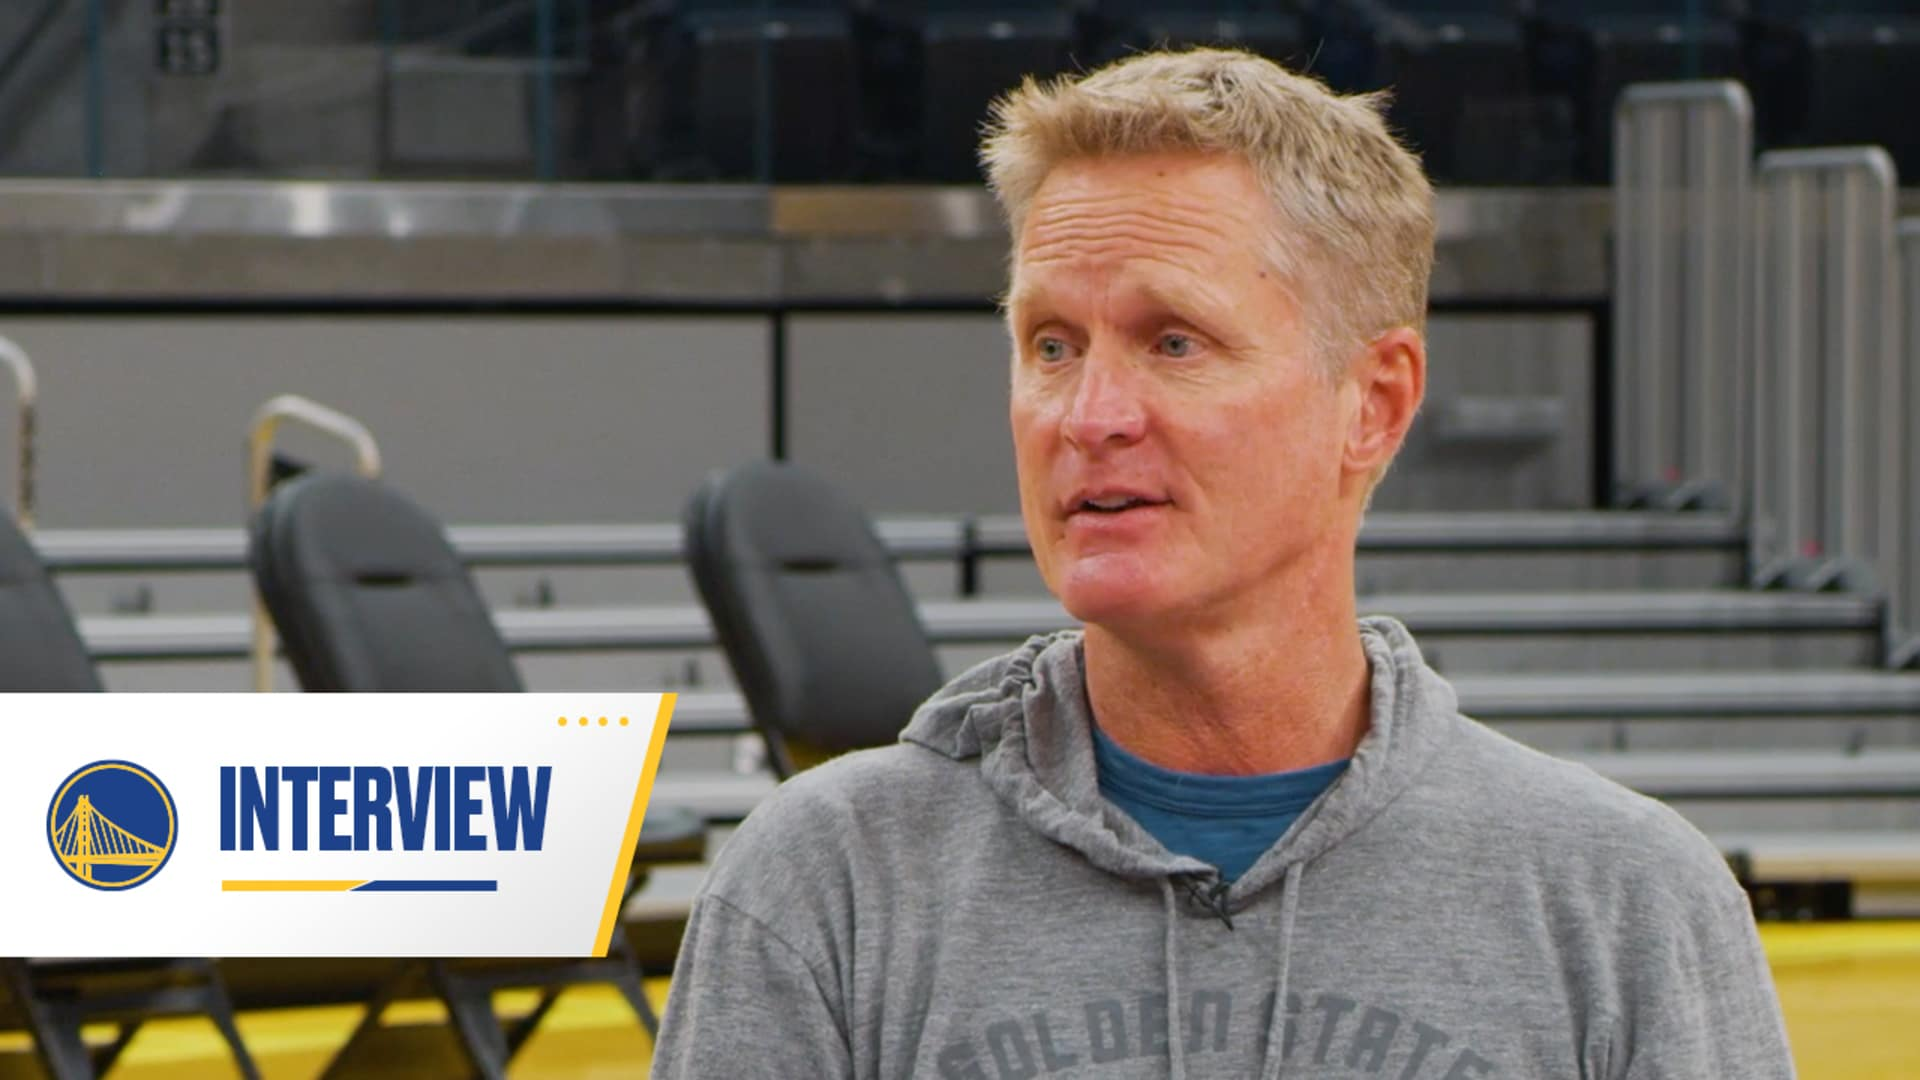 The Dubble: Steve Kerr Reflects on Warriors' Minicamp